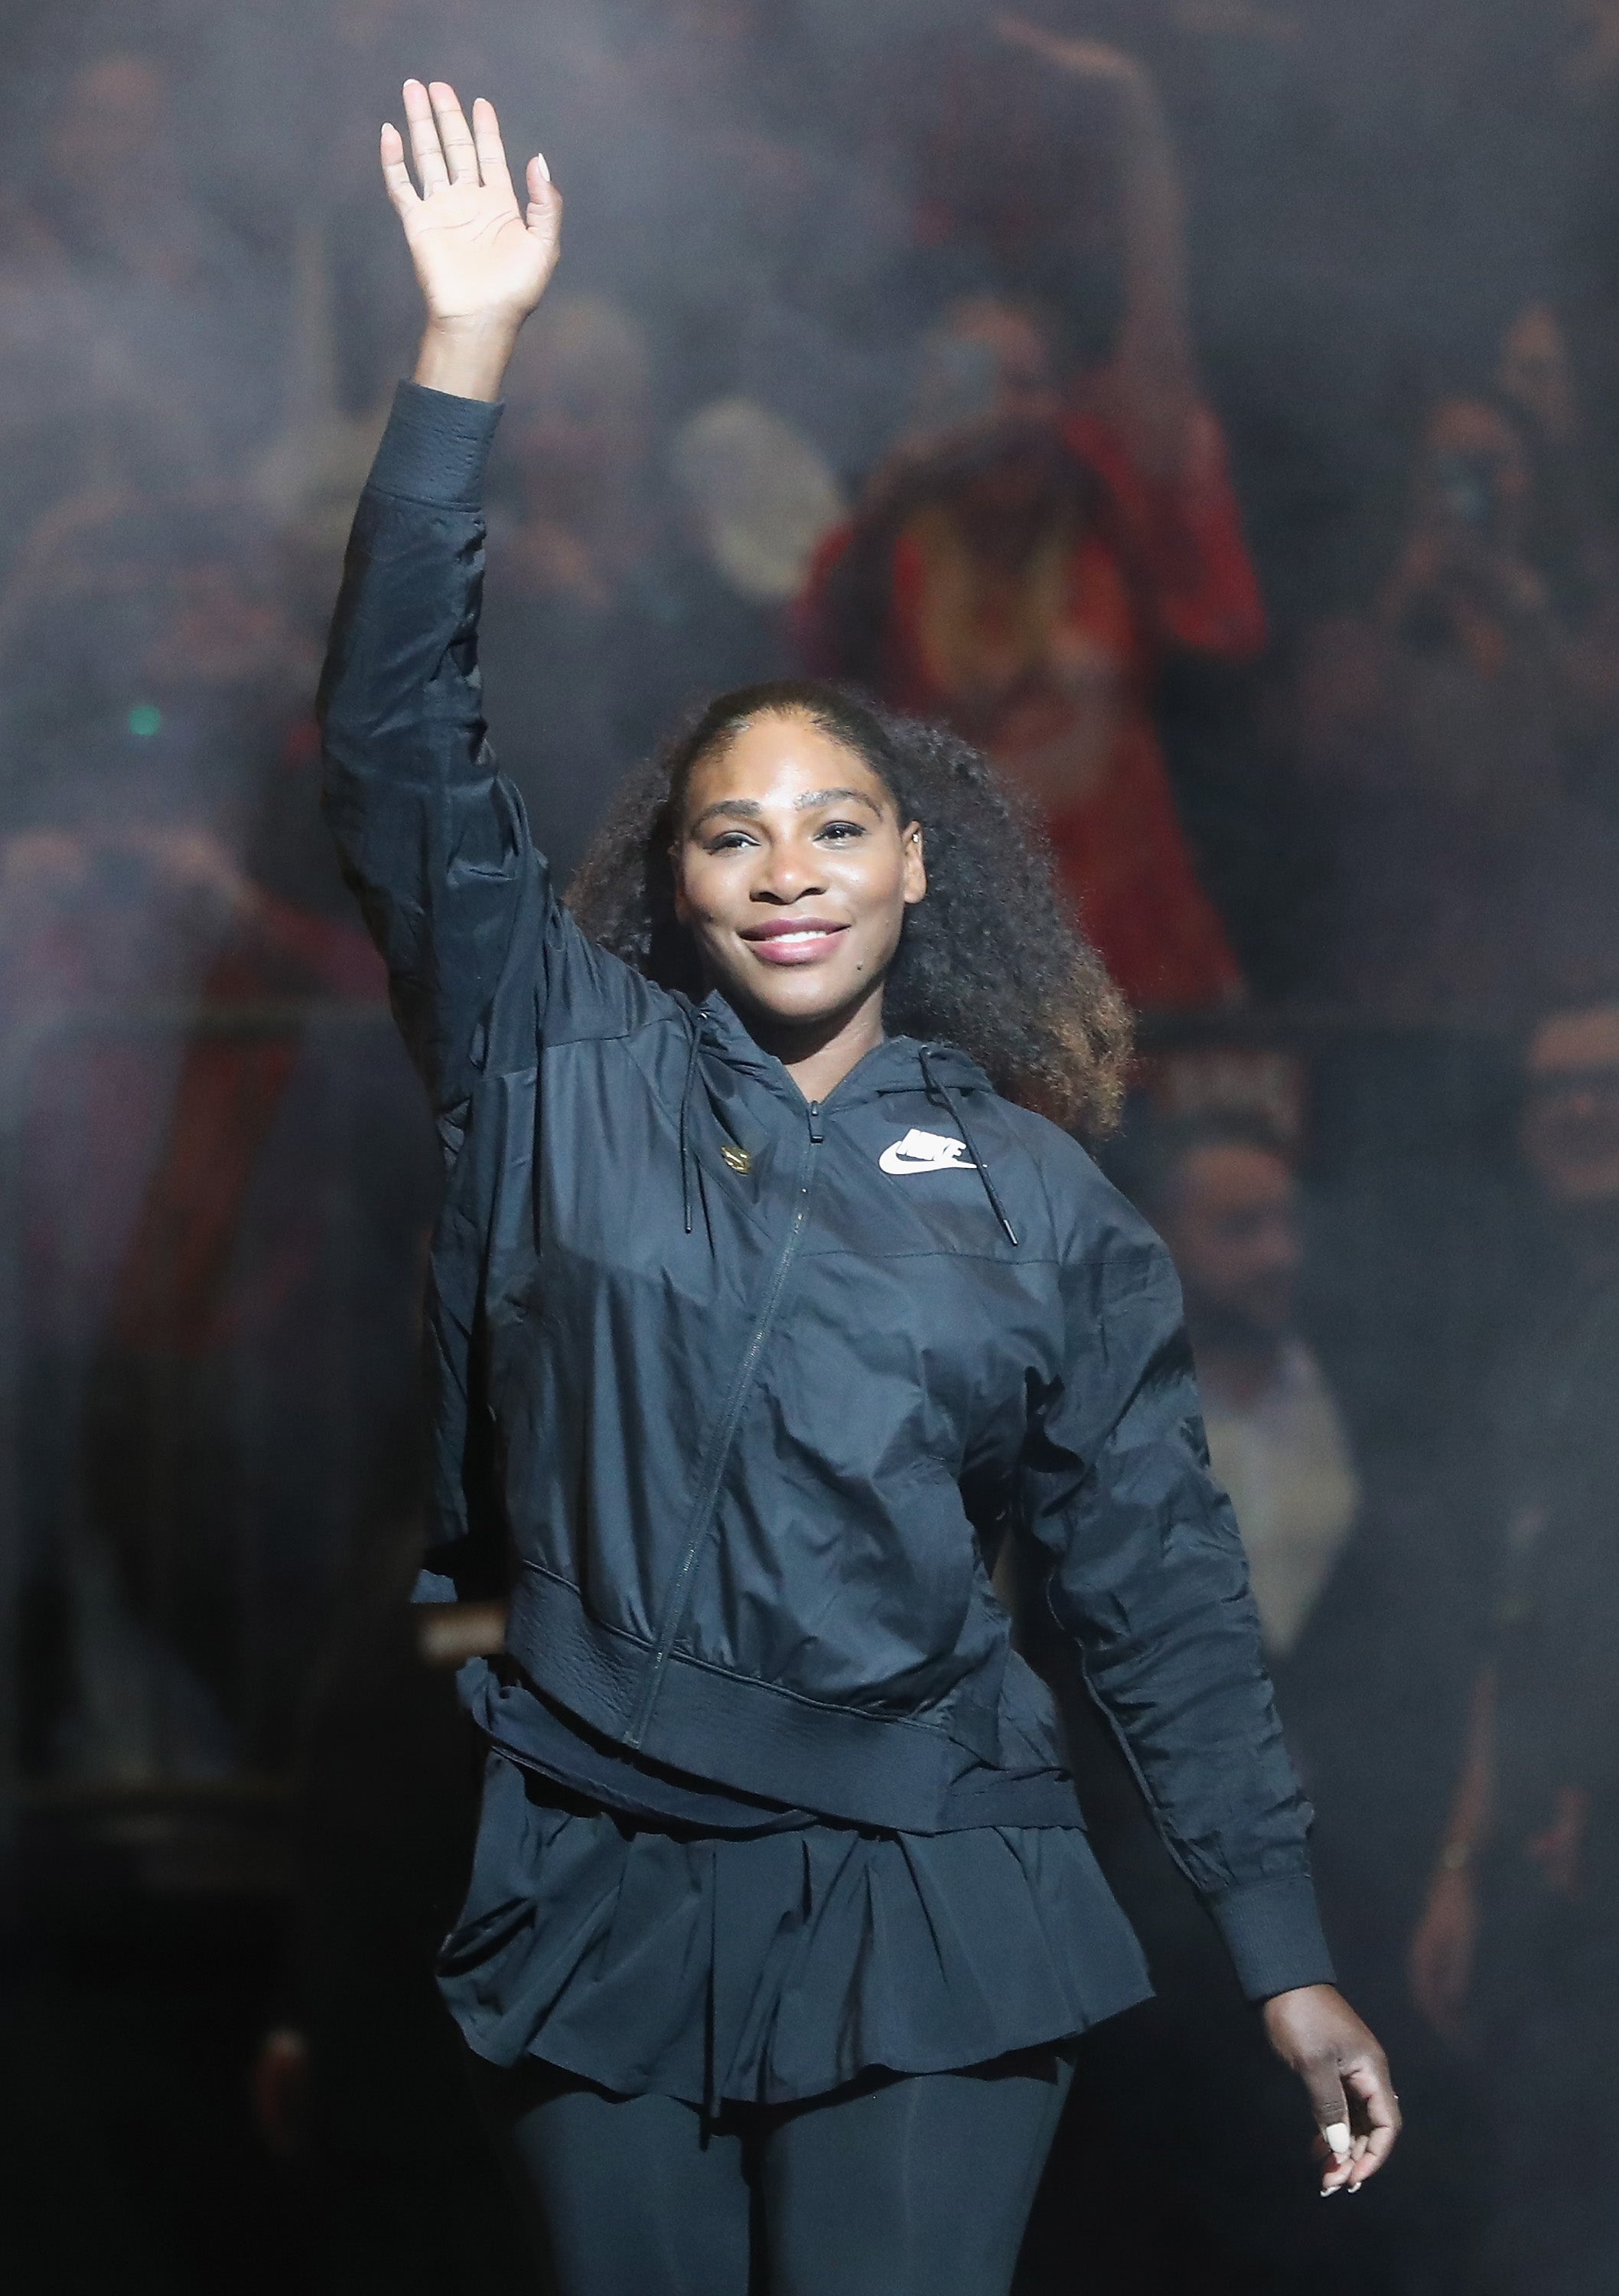 Serena Williams Reveals She Had Fears Of Returning To Court Post-Baby In New HBO Trailer